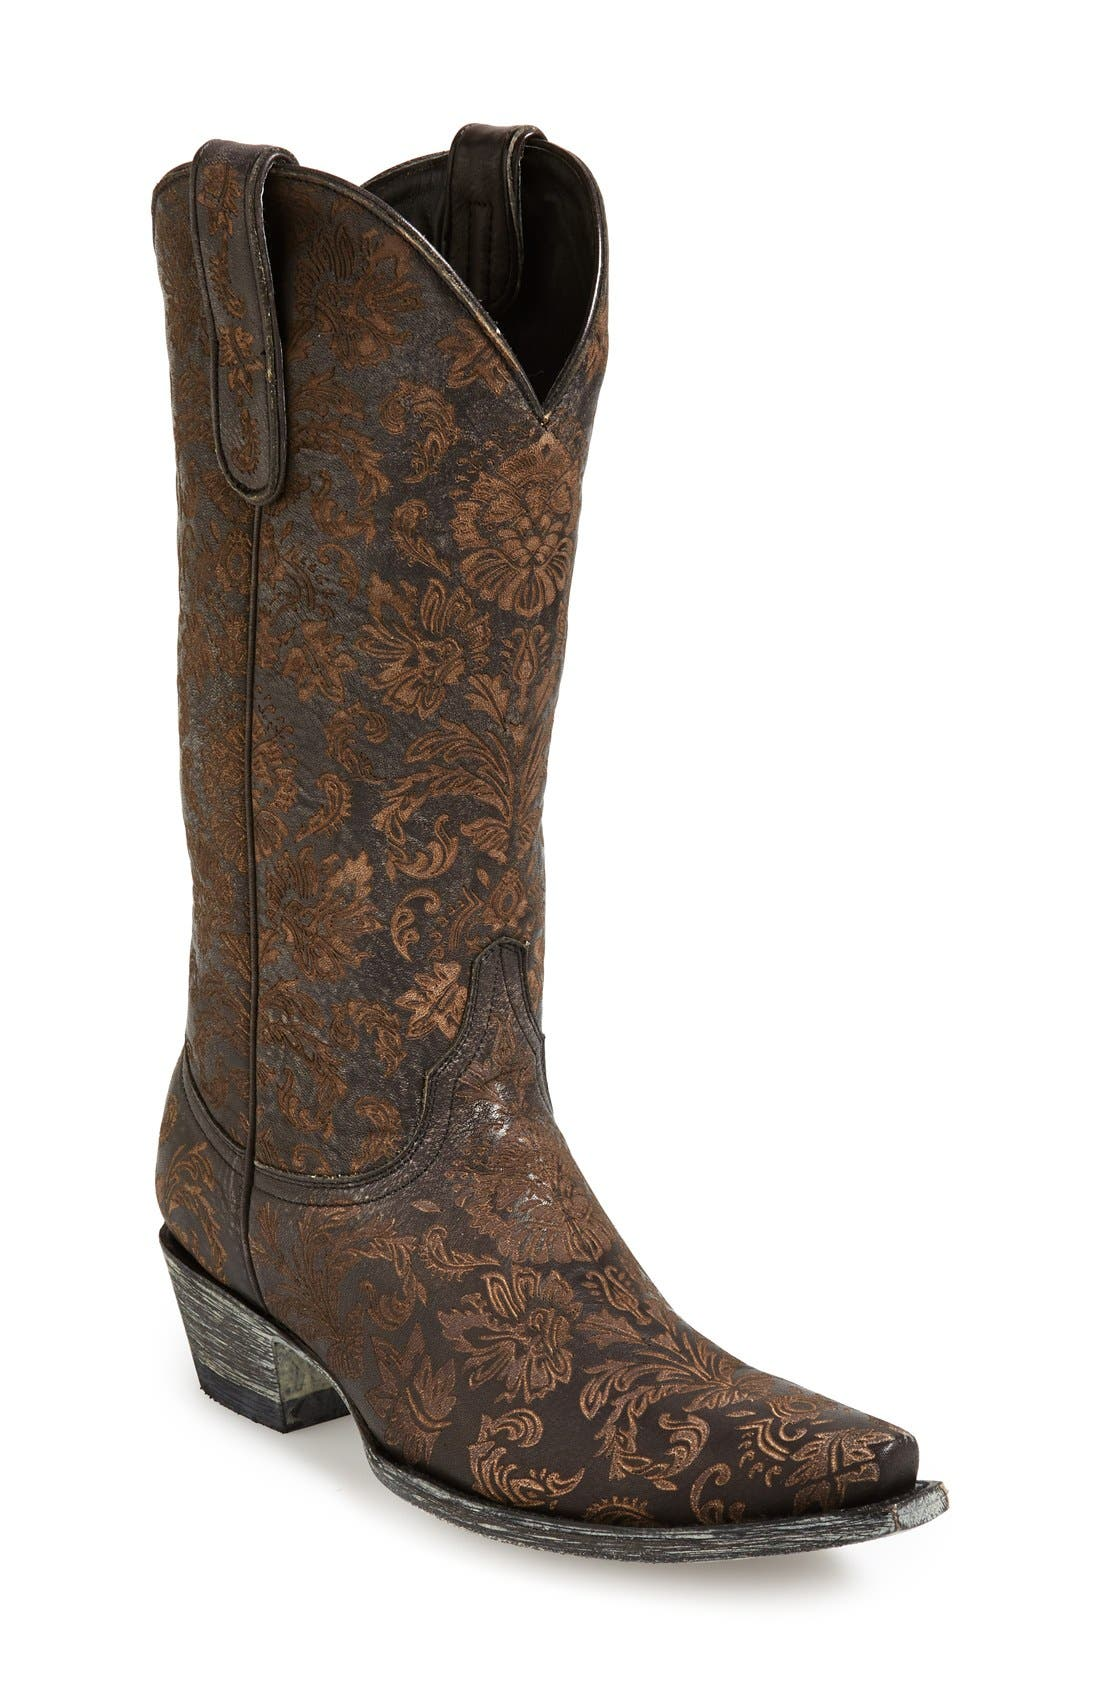 Alternate Image 1 Selected - Old Gringo 'Nadia' Leather Western Boot (Women)